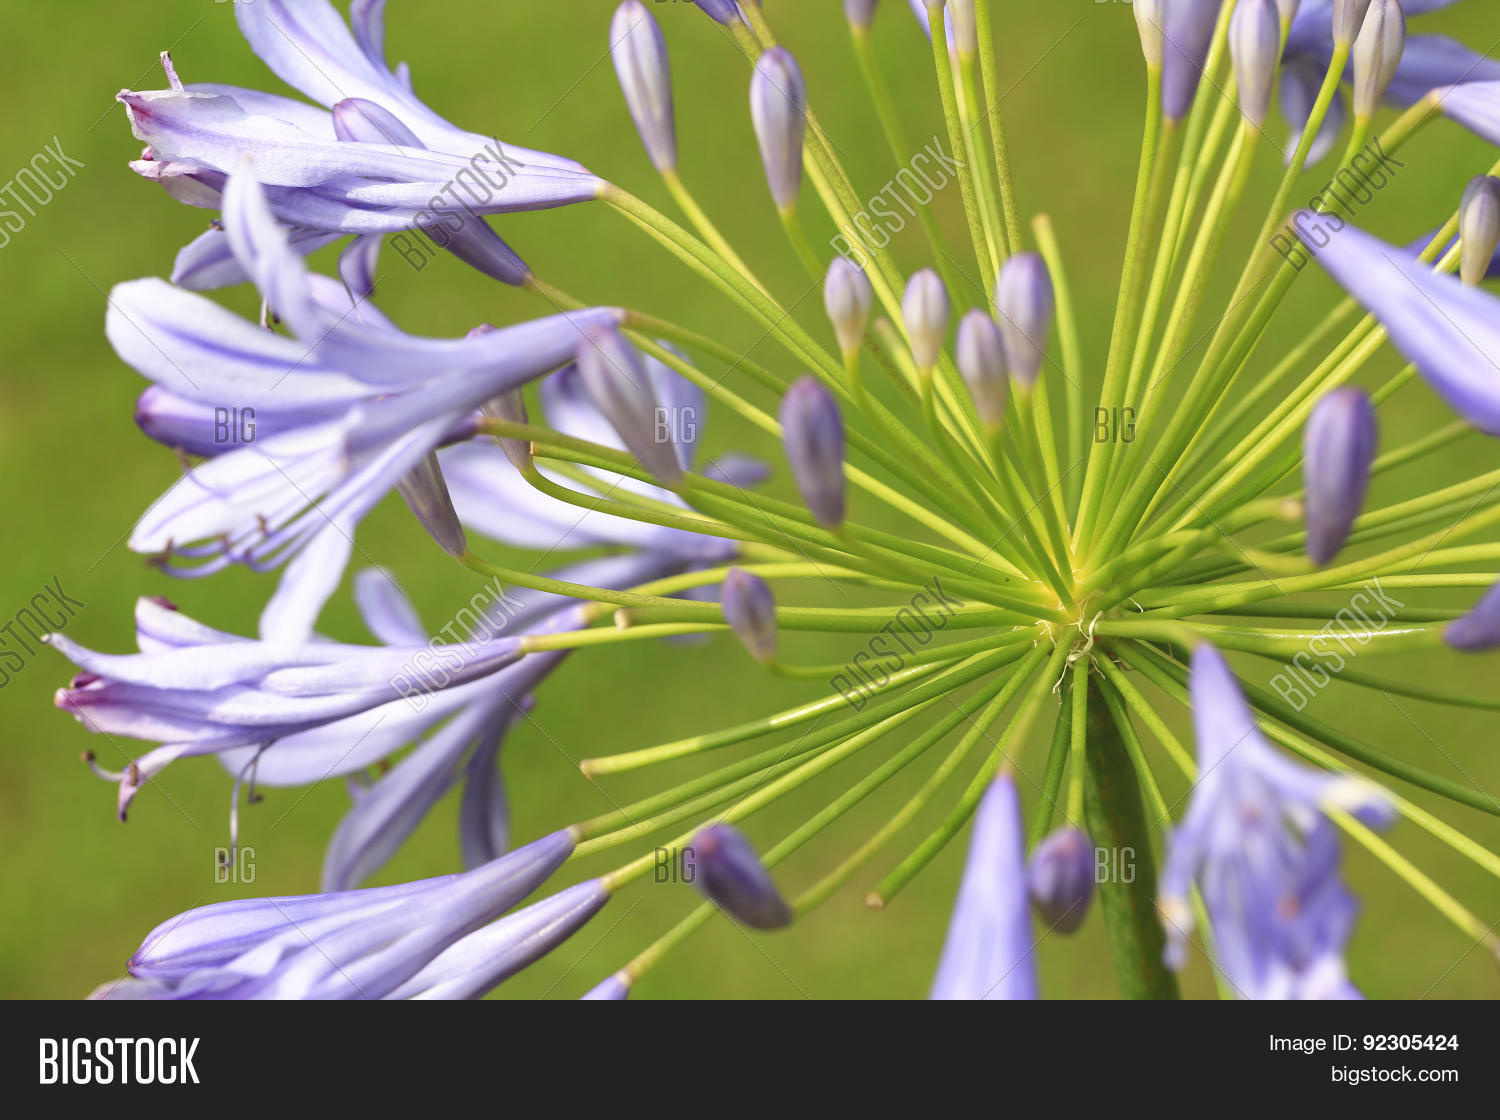 Lily Nileafrican Lily Image Photo Free Trial Bigstock